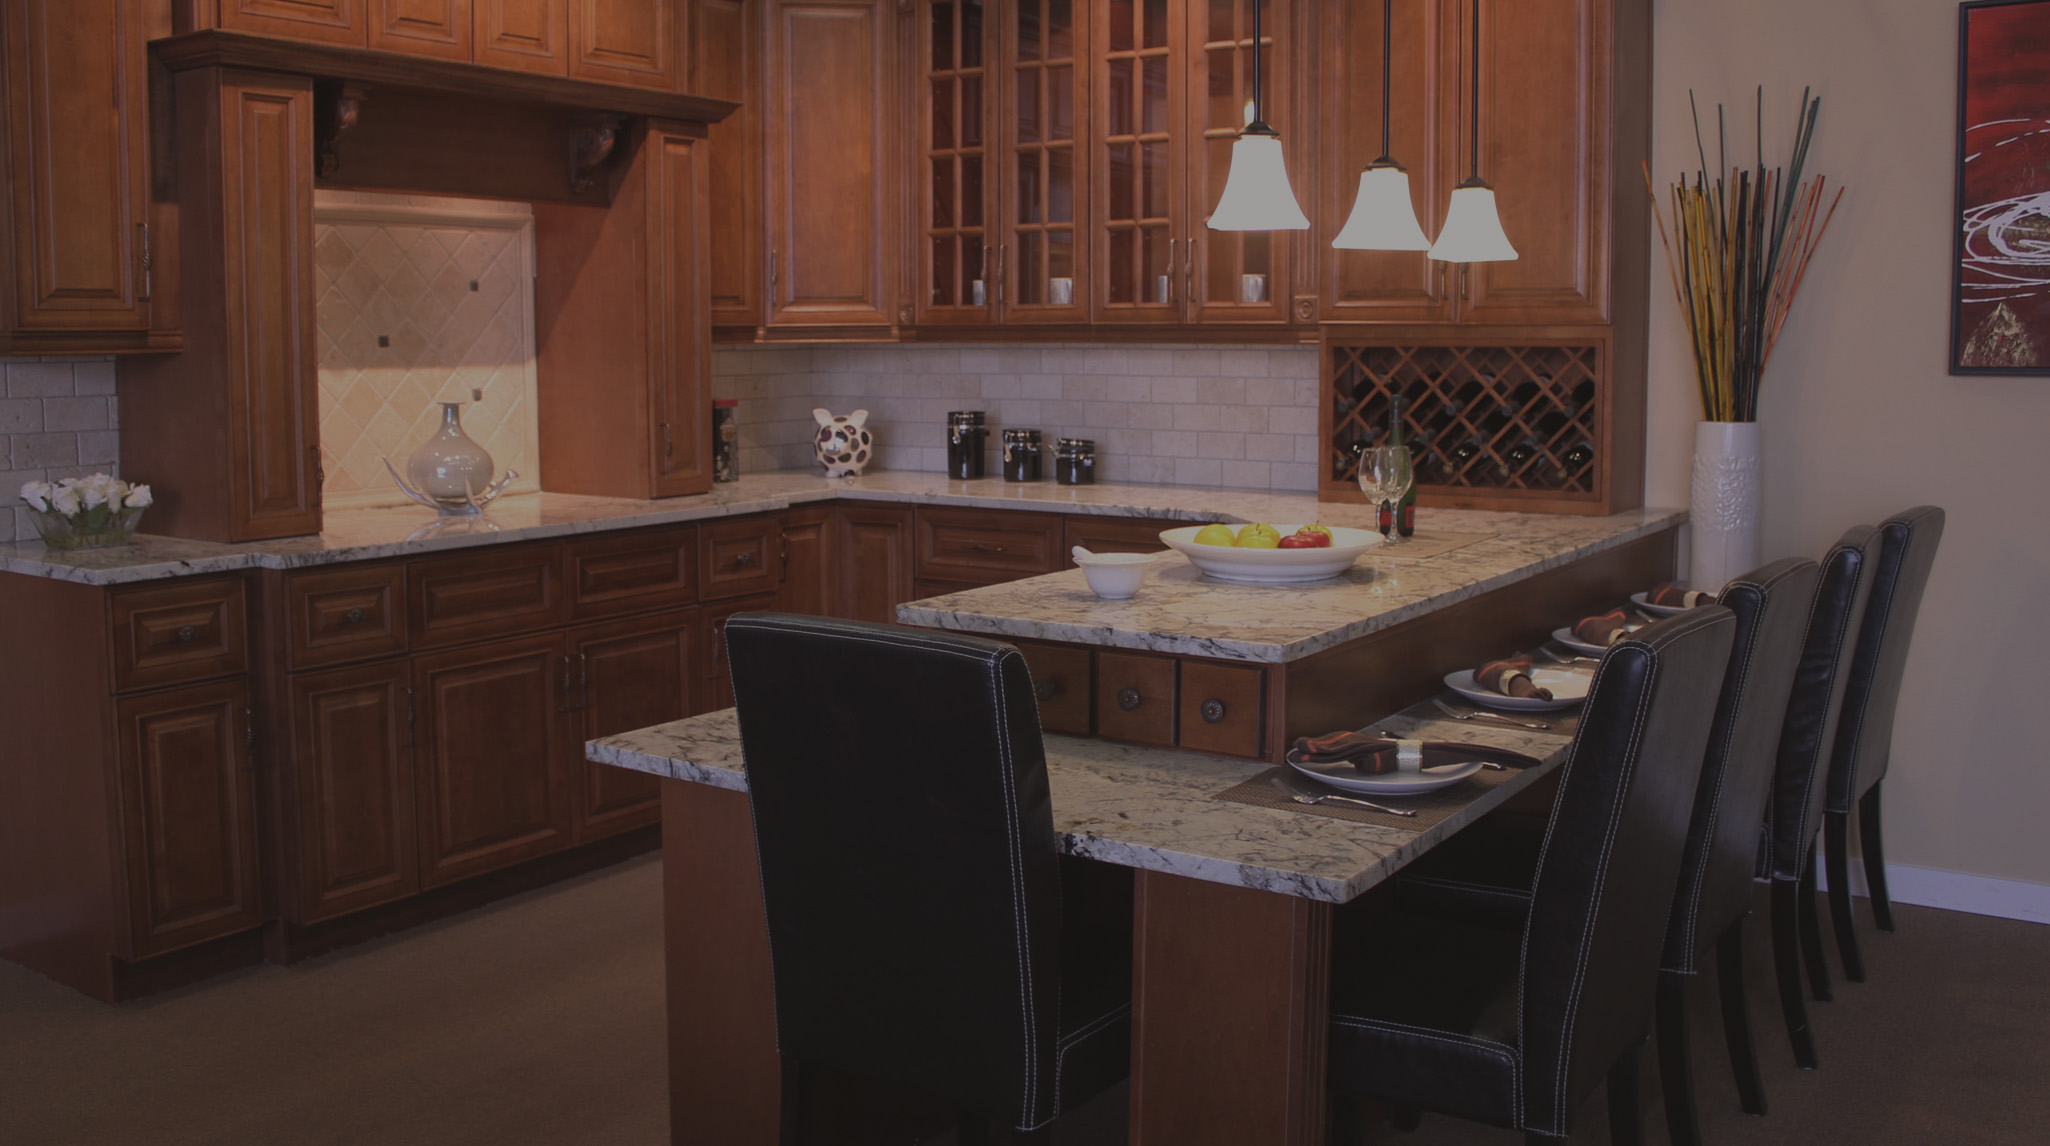 Cowry kitchen cabinets and countertops - Low Price Fast Shipping High Quality Country Wide